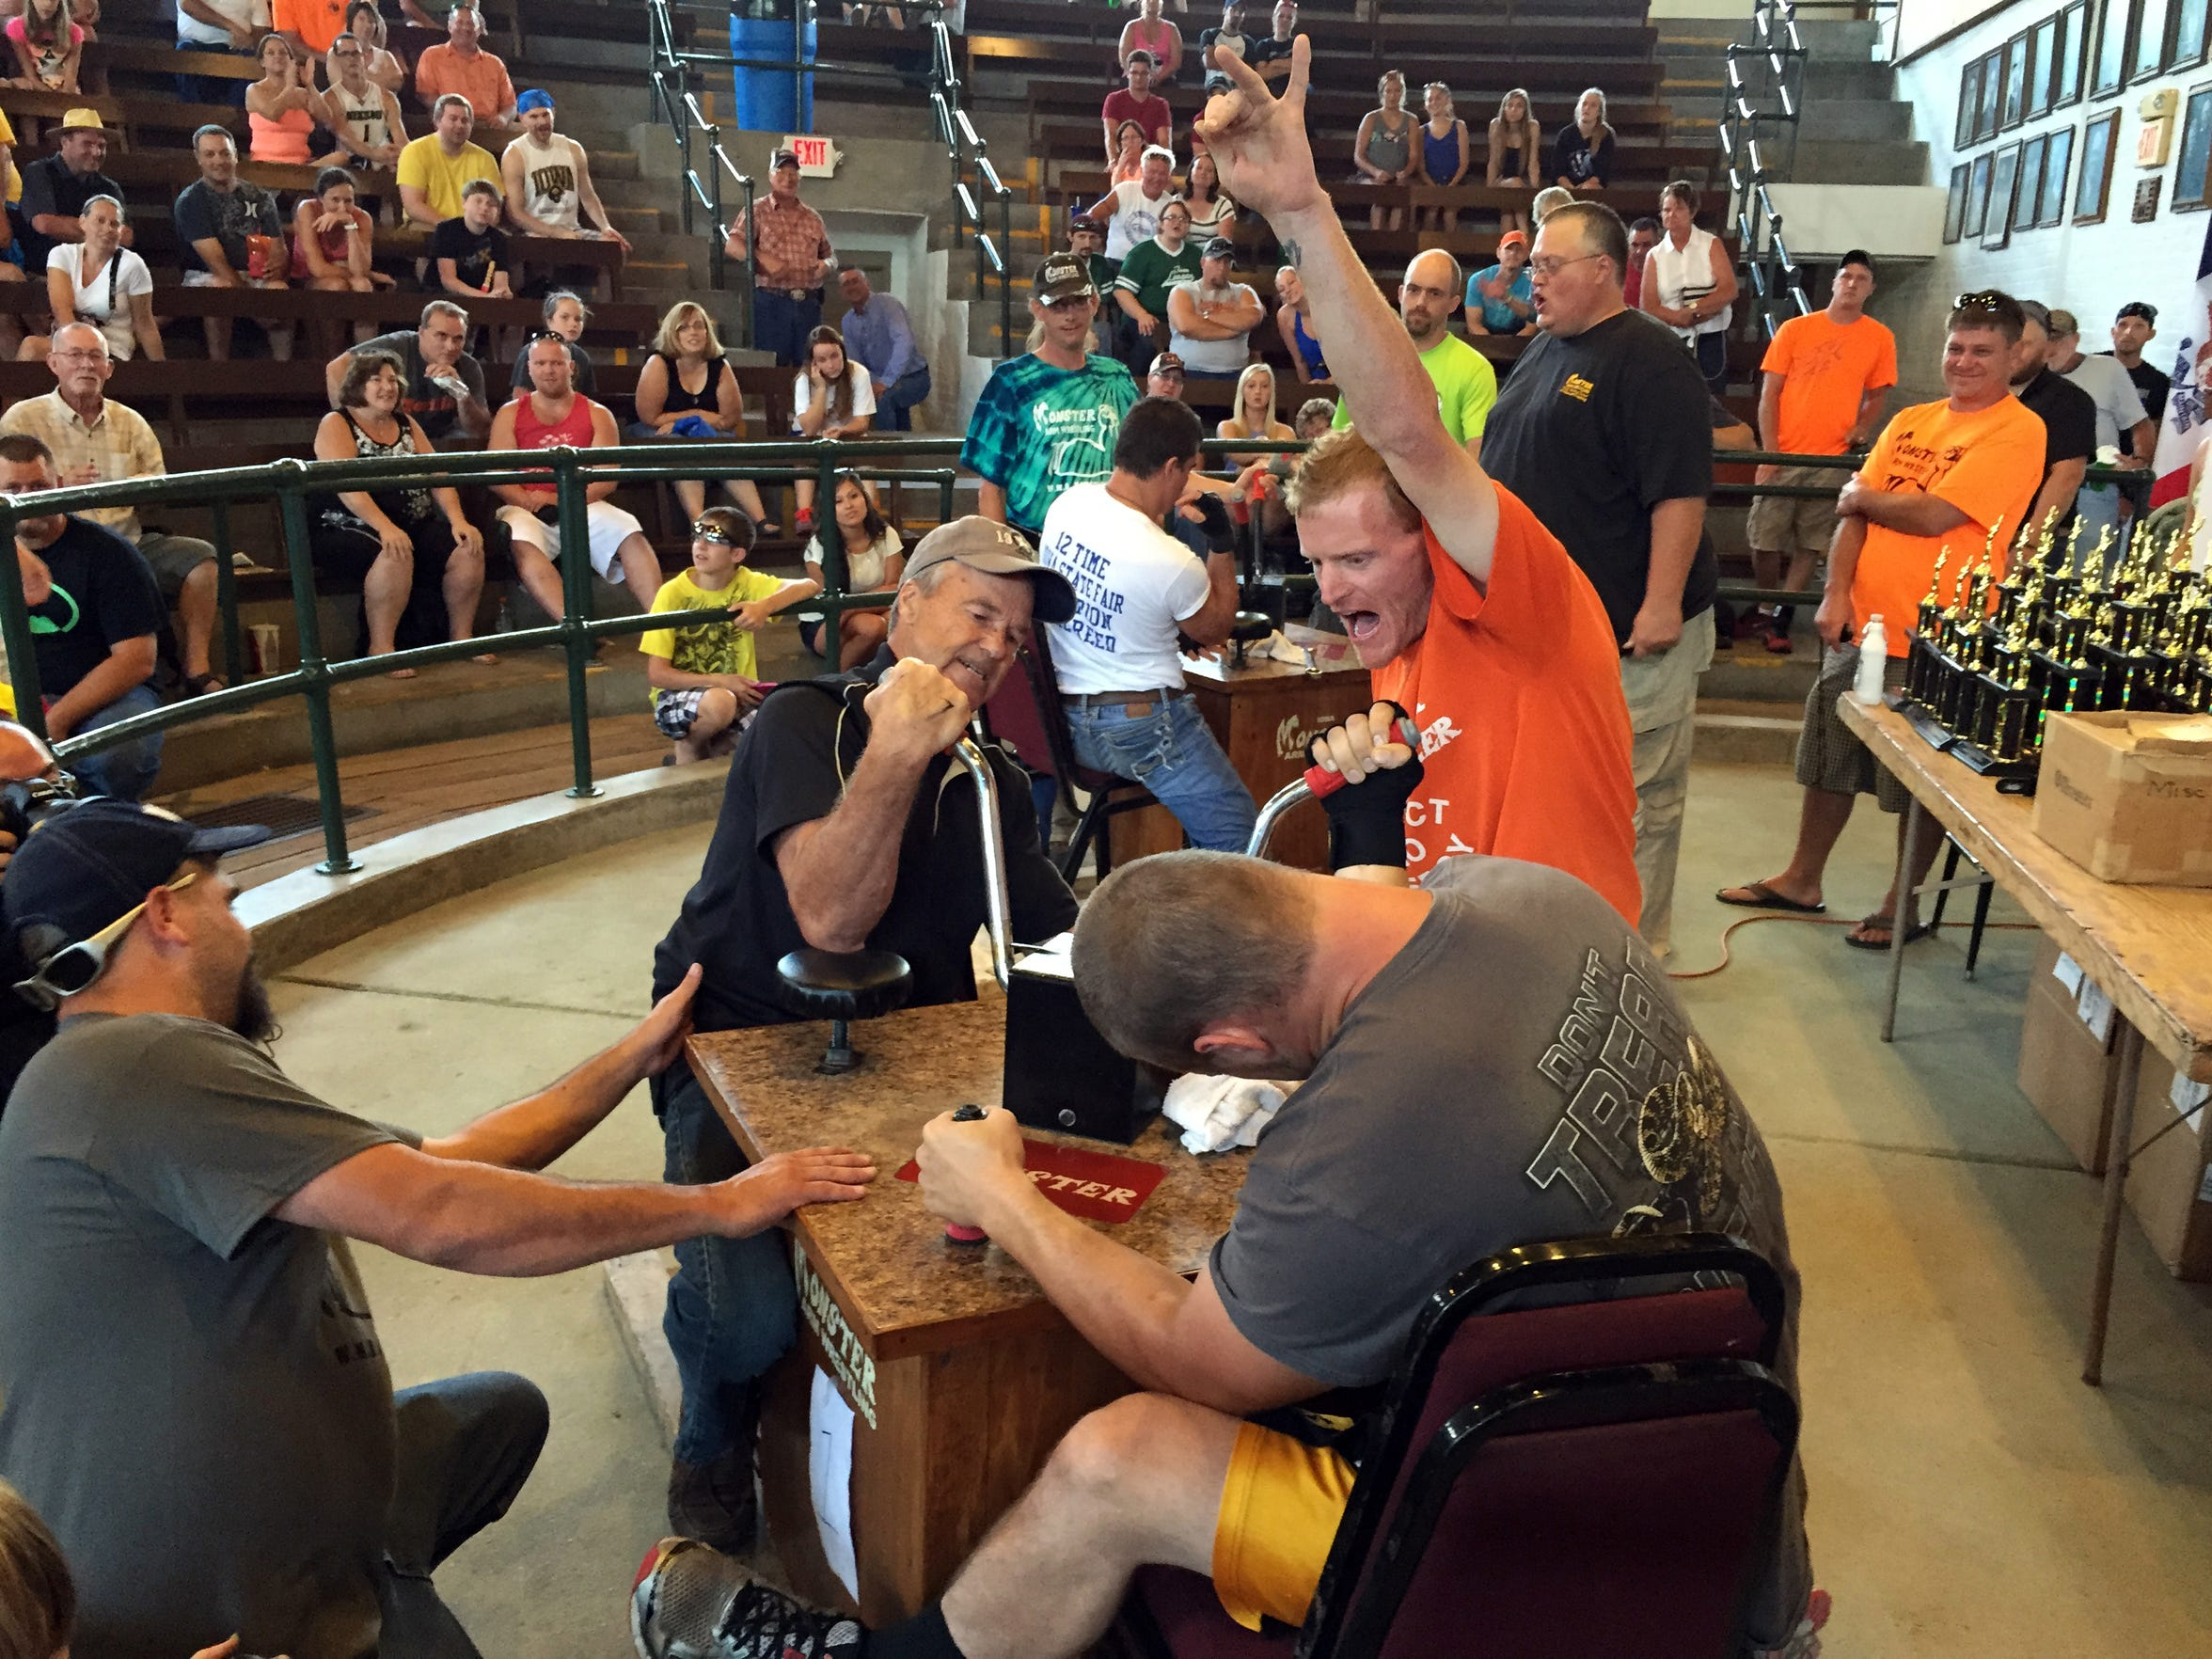 Bill Johnson of Avoca, 73, facing the camera, competes in the Monster Arm Wrestling Championships at the Iowa State Fair on Sunday, Aug. 16, 2015.